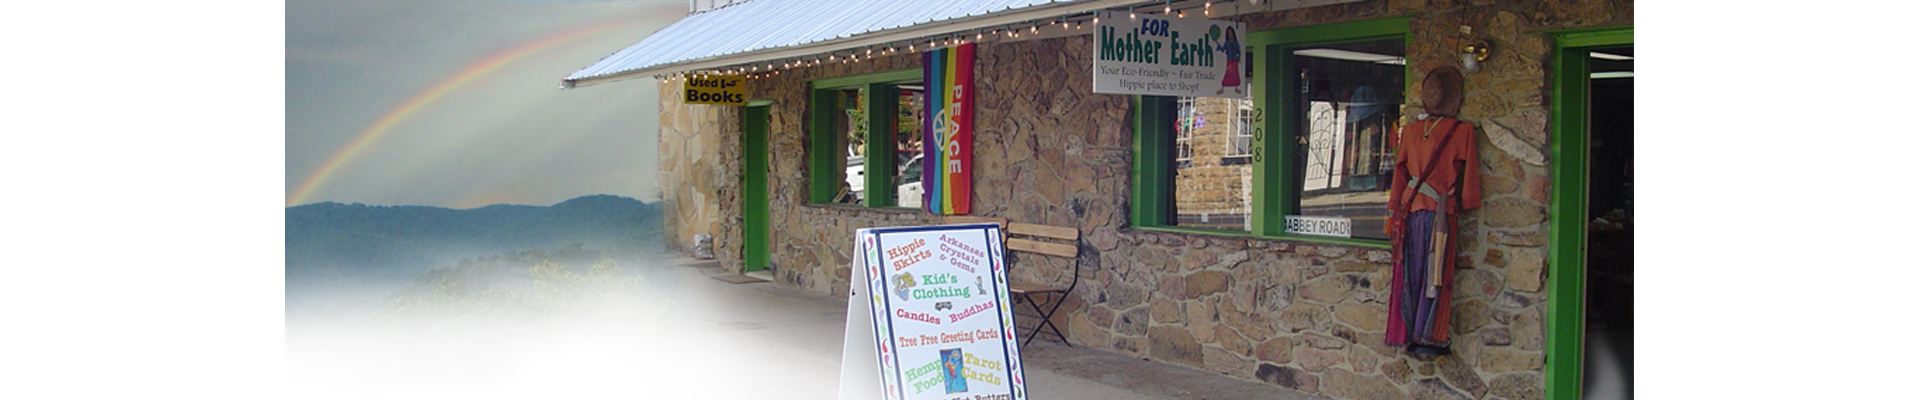 Your friendly fair trade hemp shop located in beautiful Mountain View, Arkansas